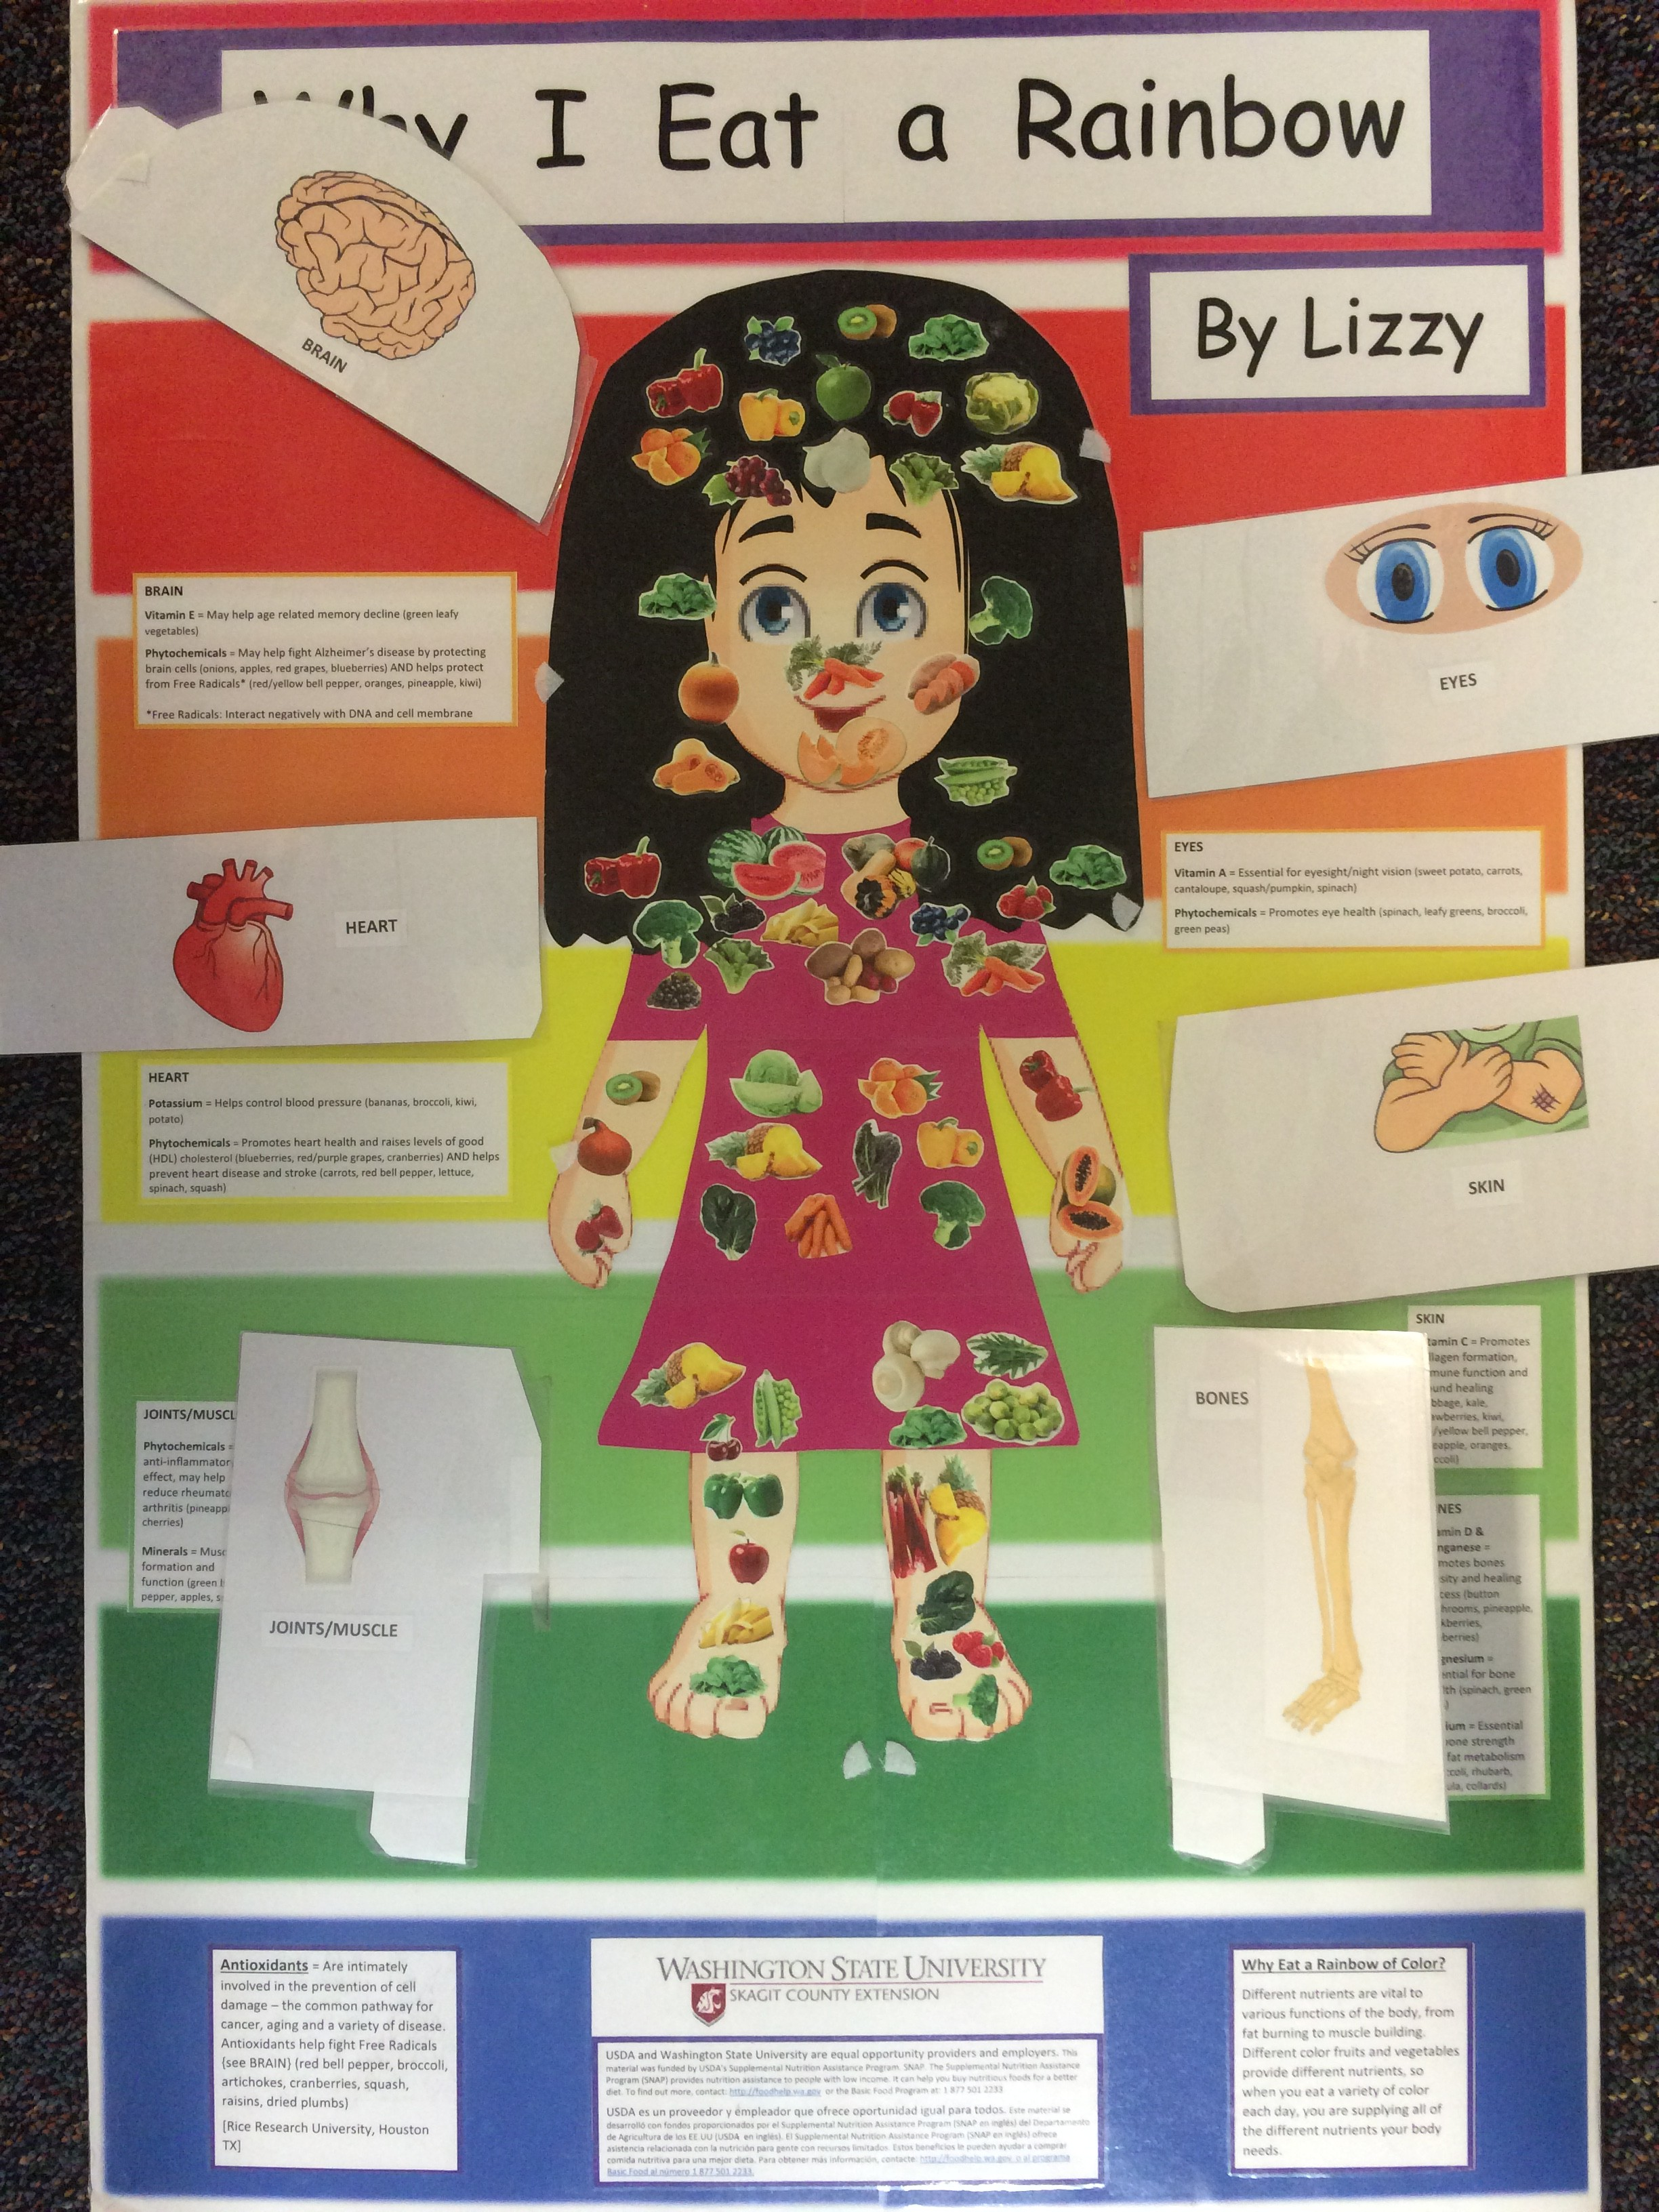 Lizzy Board Nutrient Contents